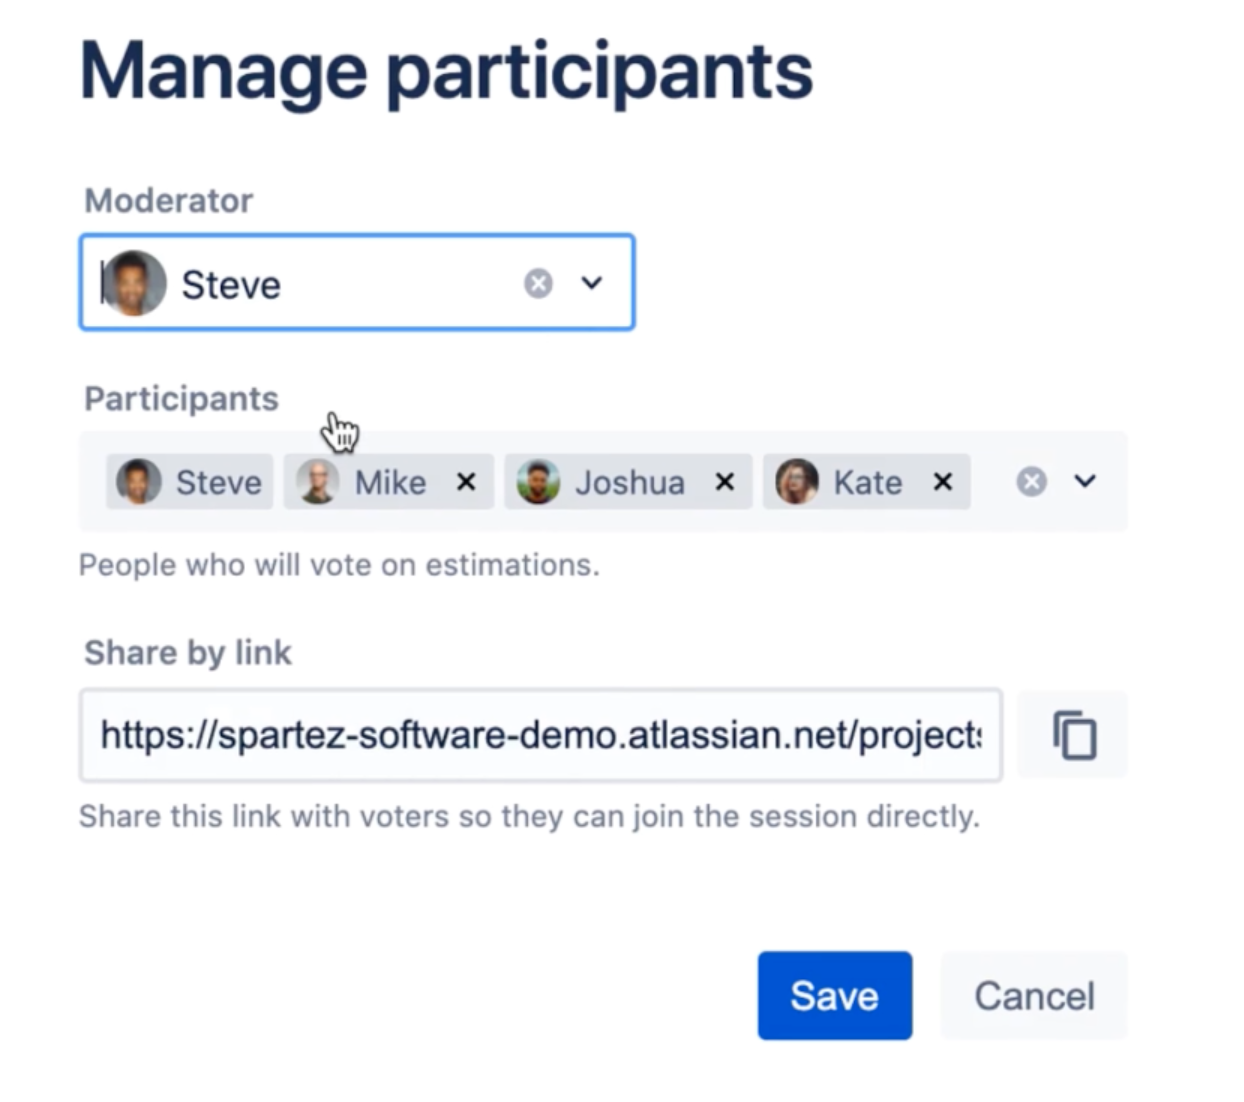 Manage participants and assign the session moderator